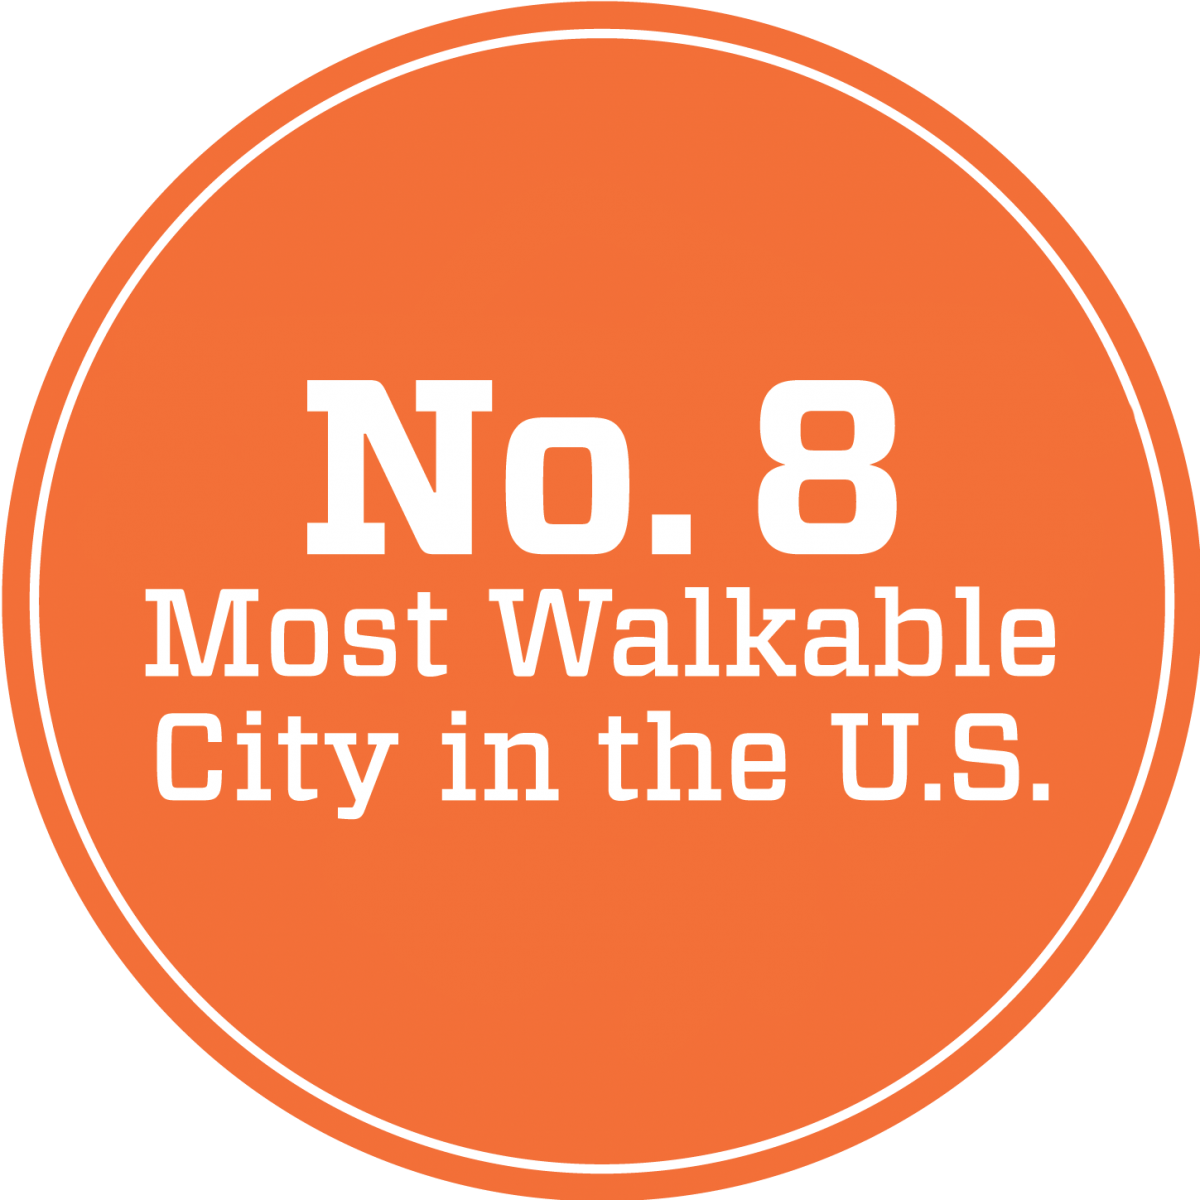 #8 most walkable city in the U.S.